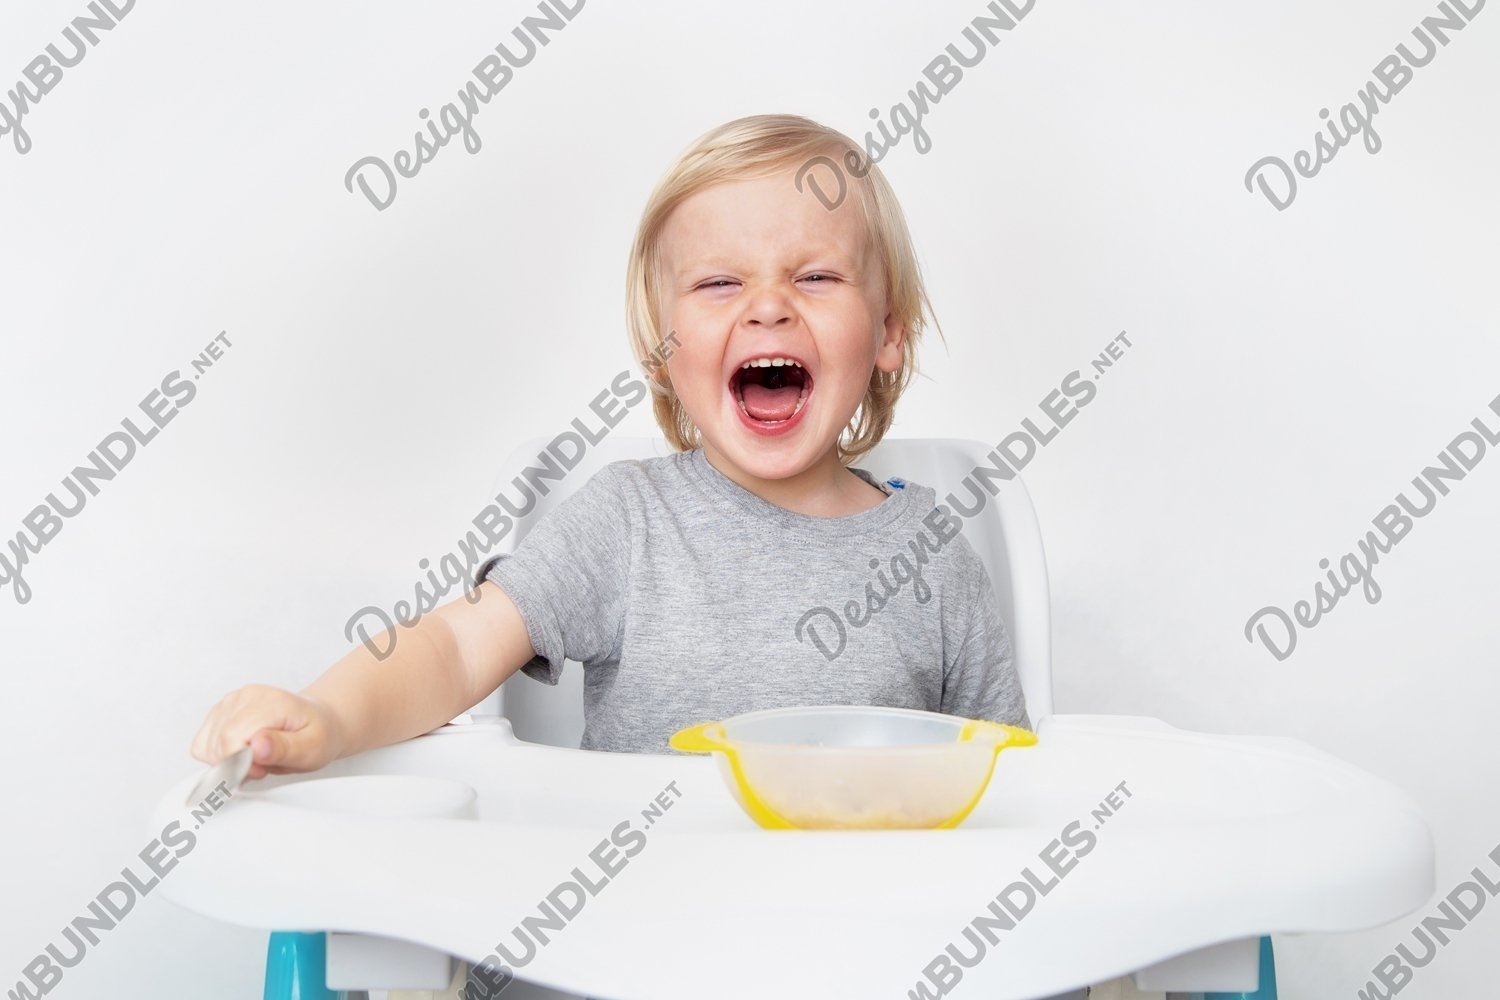 Photo of a child who does not want to eat example image 1